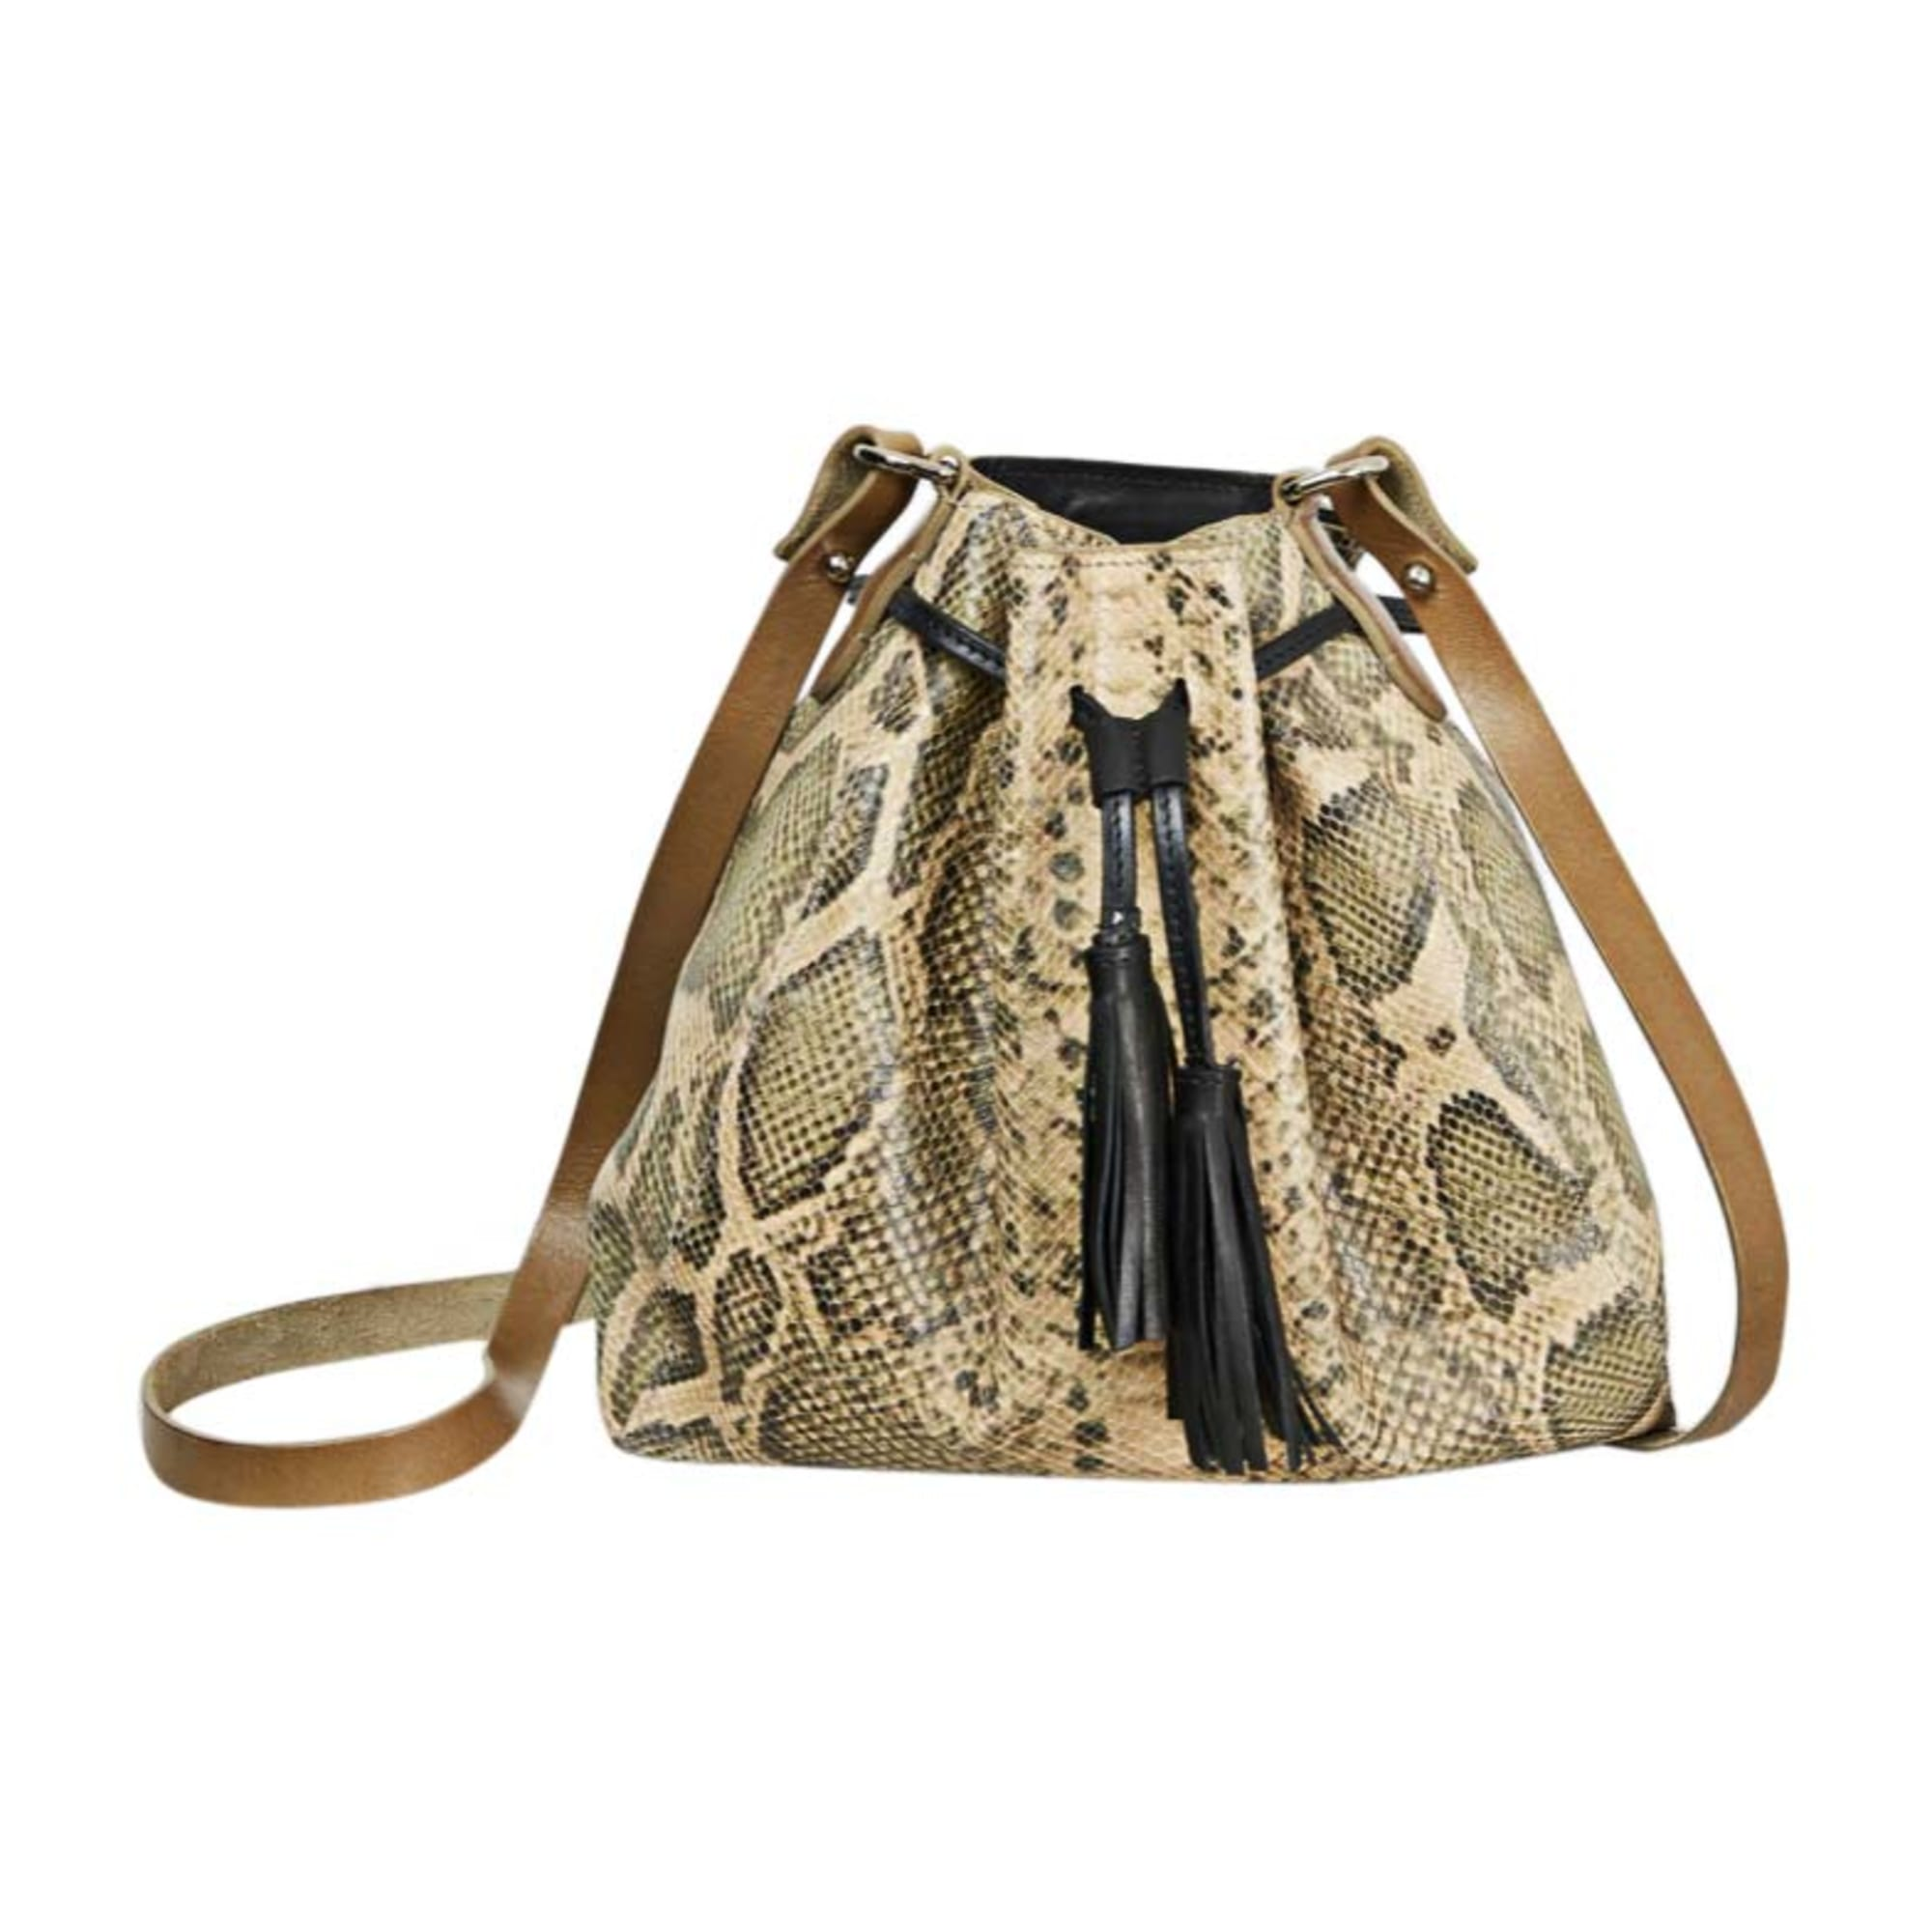 Leather Shoulder Bag ISABEL MARANT Beige, camel